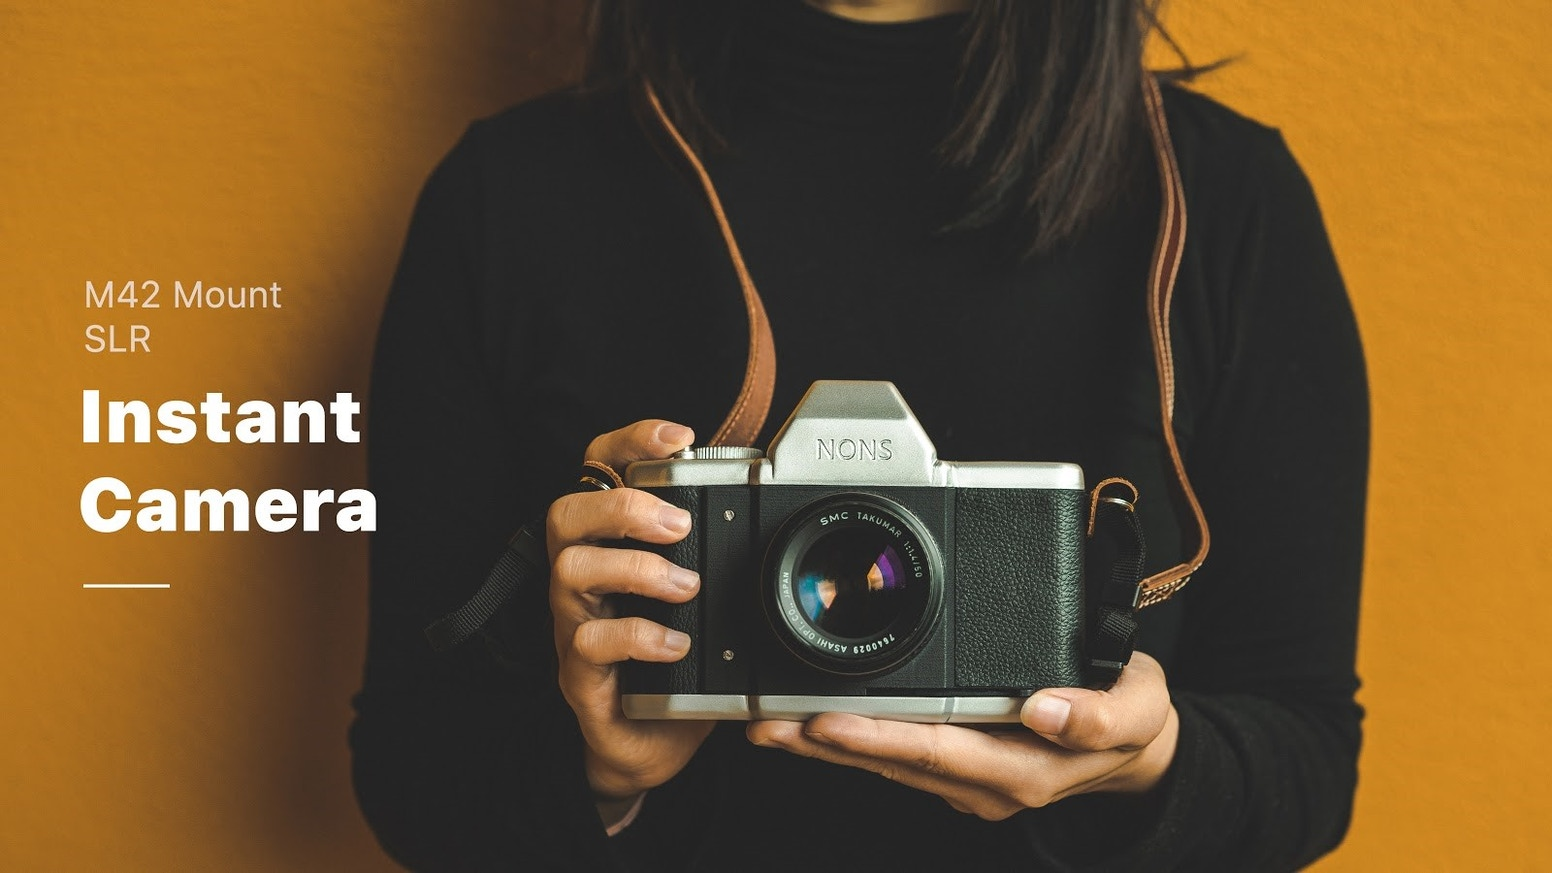 The First M42 Mount SLR Instant Camera - NONS SL42